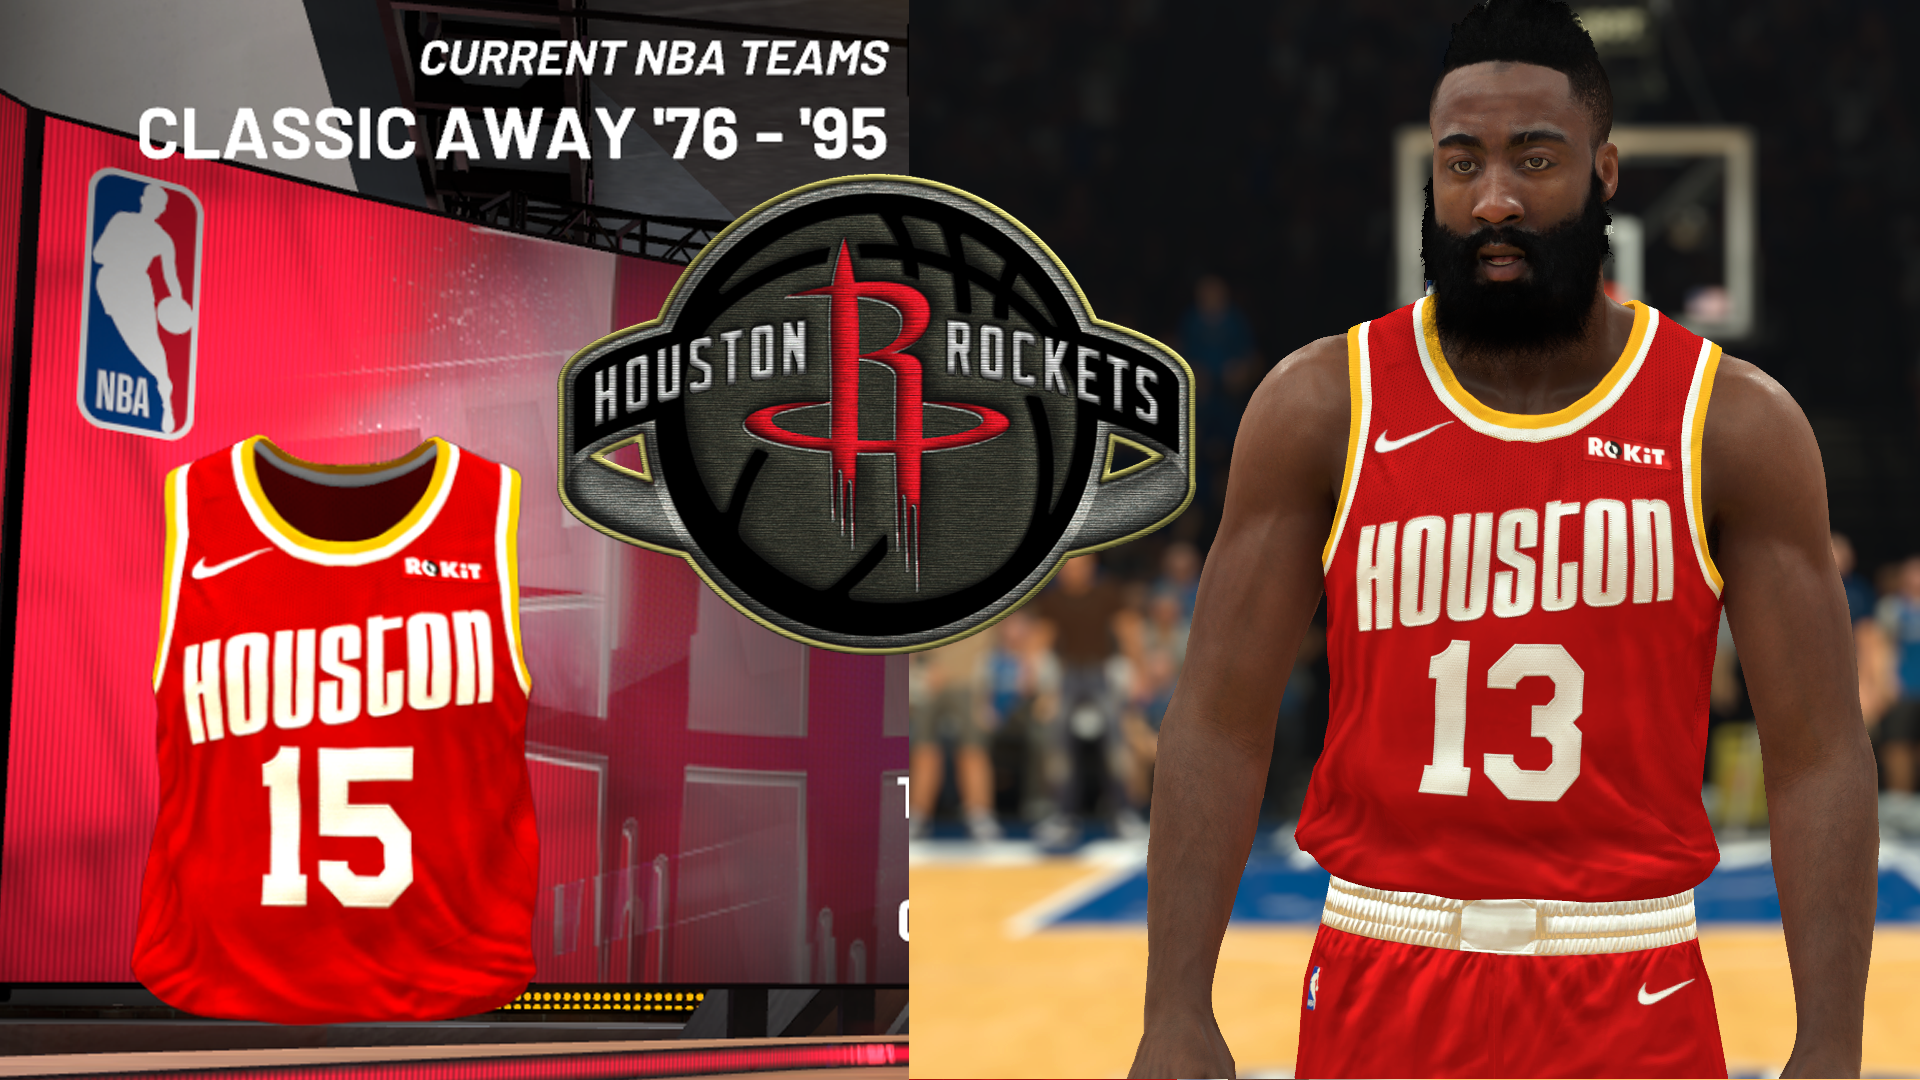 Houston Rockets 2020 Classic Edition Jersey (pinoy21)